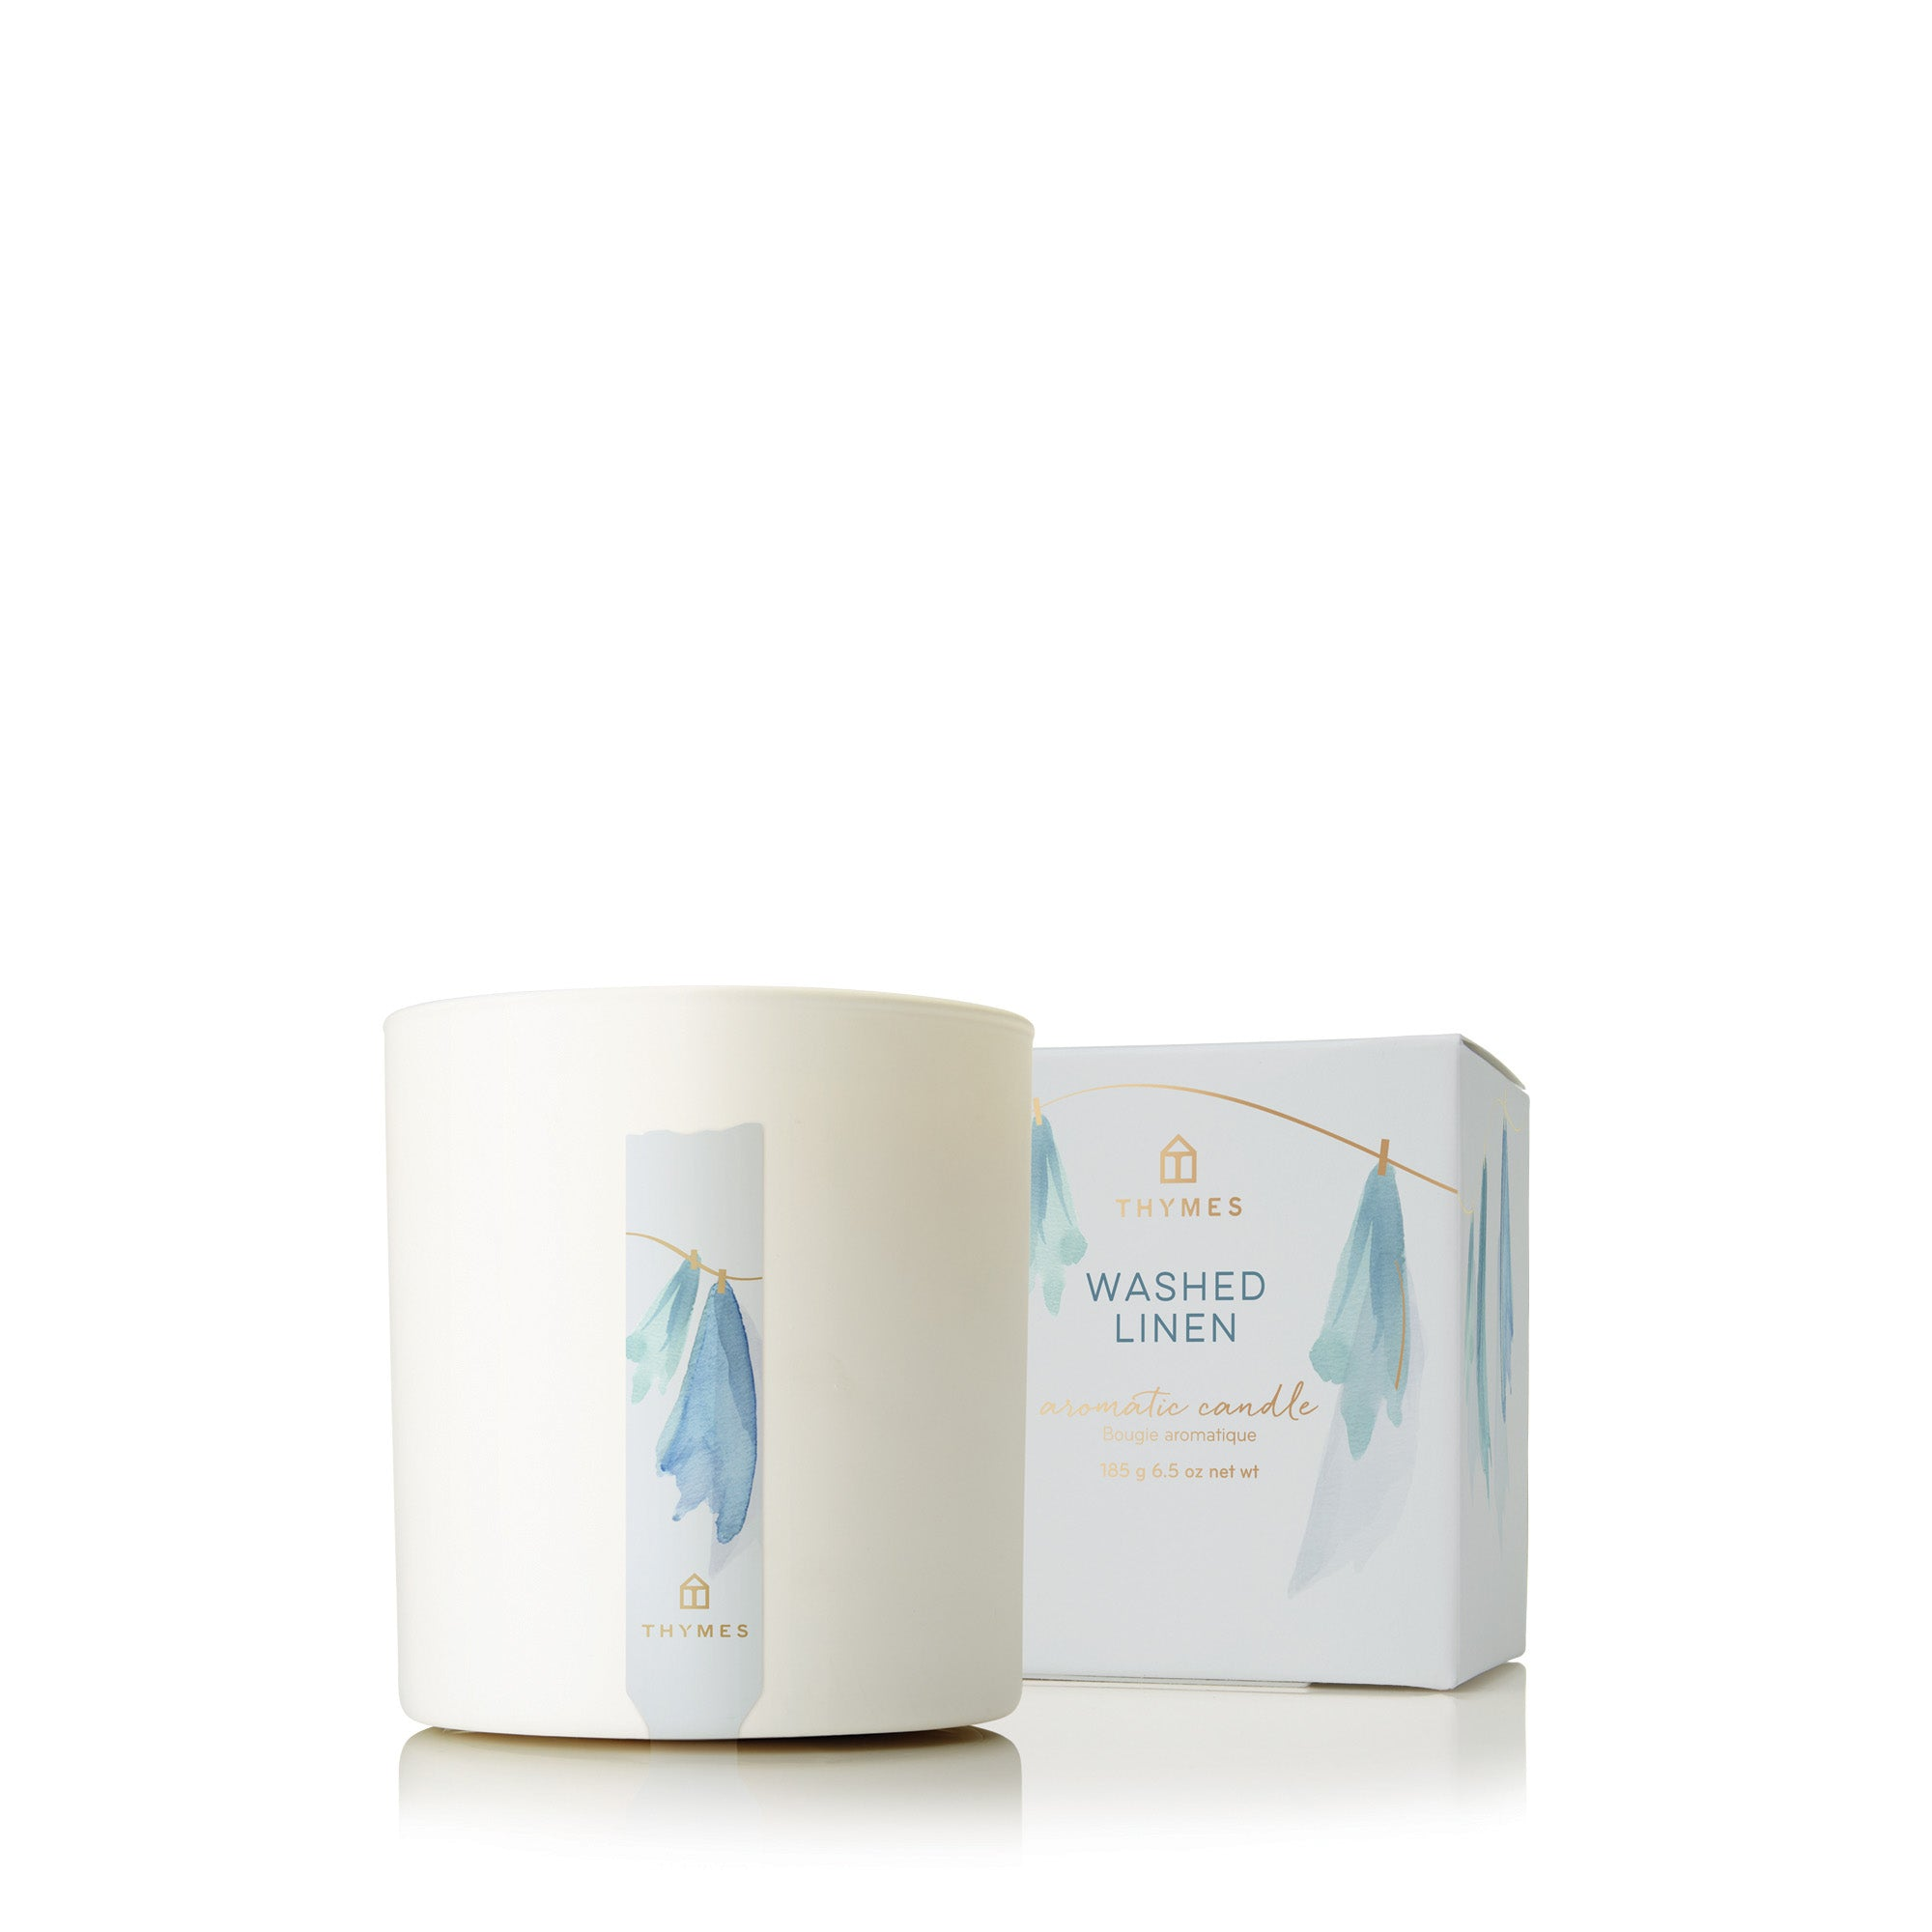 WASHED LINEN POURED CANDLE 8.0 OZ NET WT / 227 G